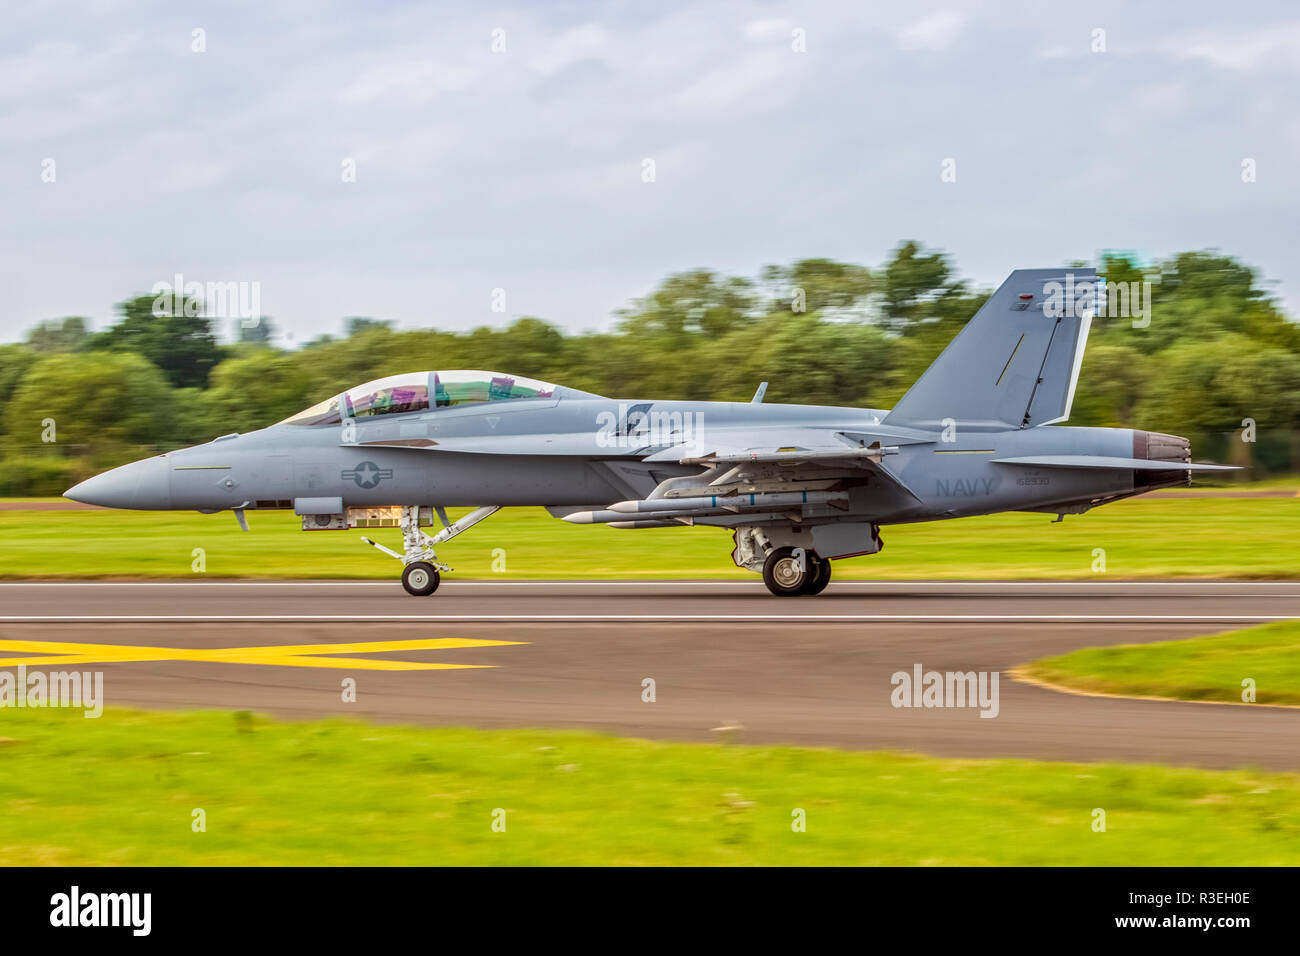 US Navy McDonnell Douglas F/A-18E Hornet is a twin-engine, supersonic, all-weather, carrier-capable, multirole combat jet, designed as both a fighter  - Stock Image